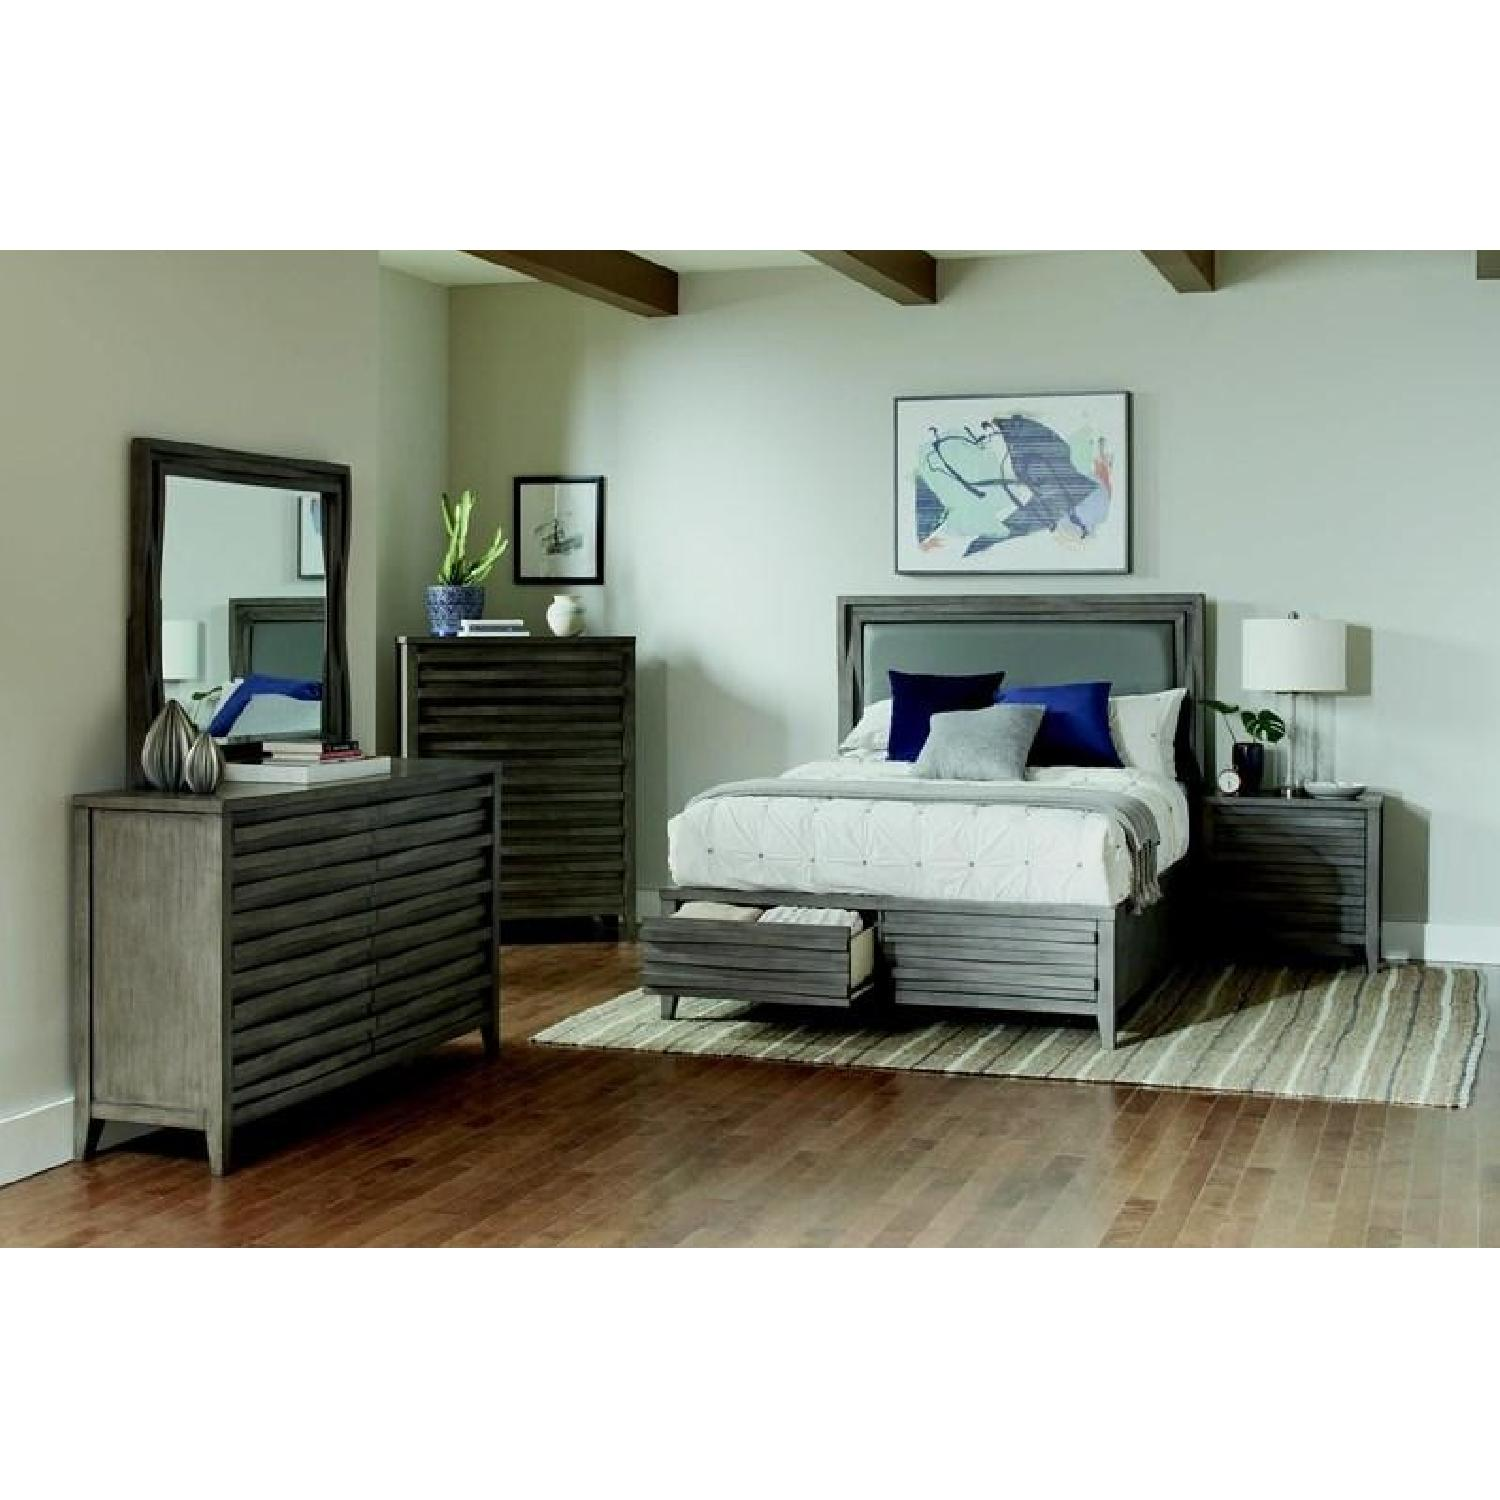 Modern Chest in Dark Taupe w/ Wave-Like Drawer Face - image-1